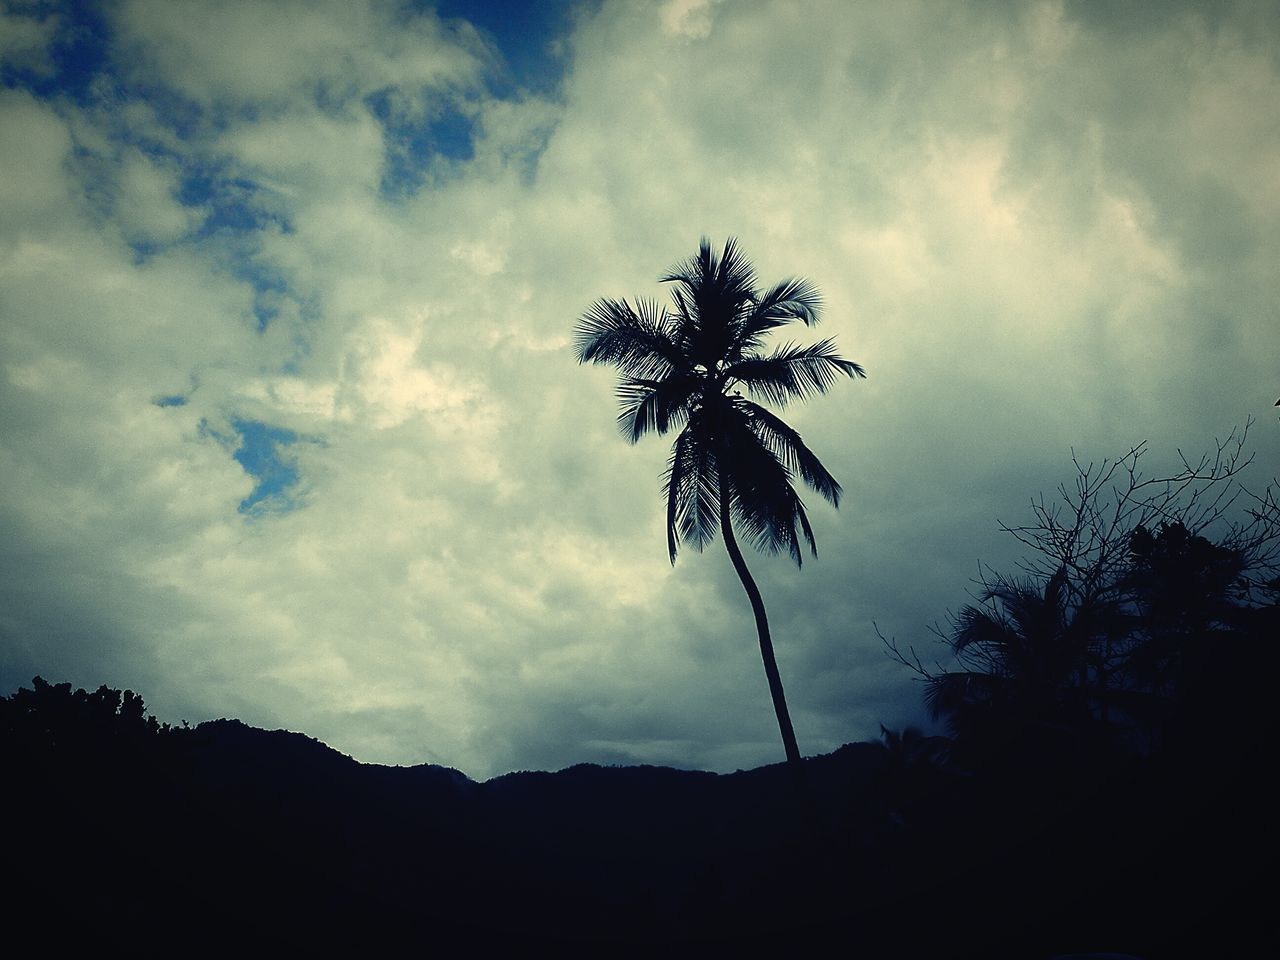 sky, silhouette, tree, low angle view, nature, cloud - sky, beauty in nature, no people, tranquility, outdoors, tranquil scene, palm tree, scenics, day, mountain